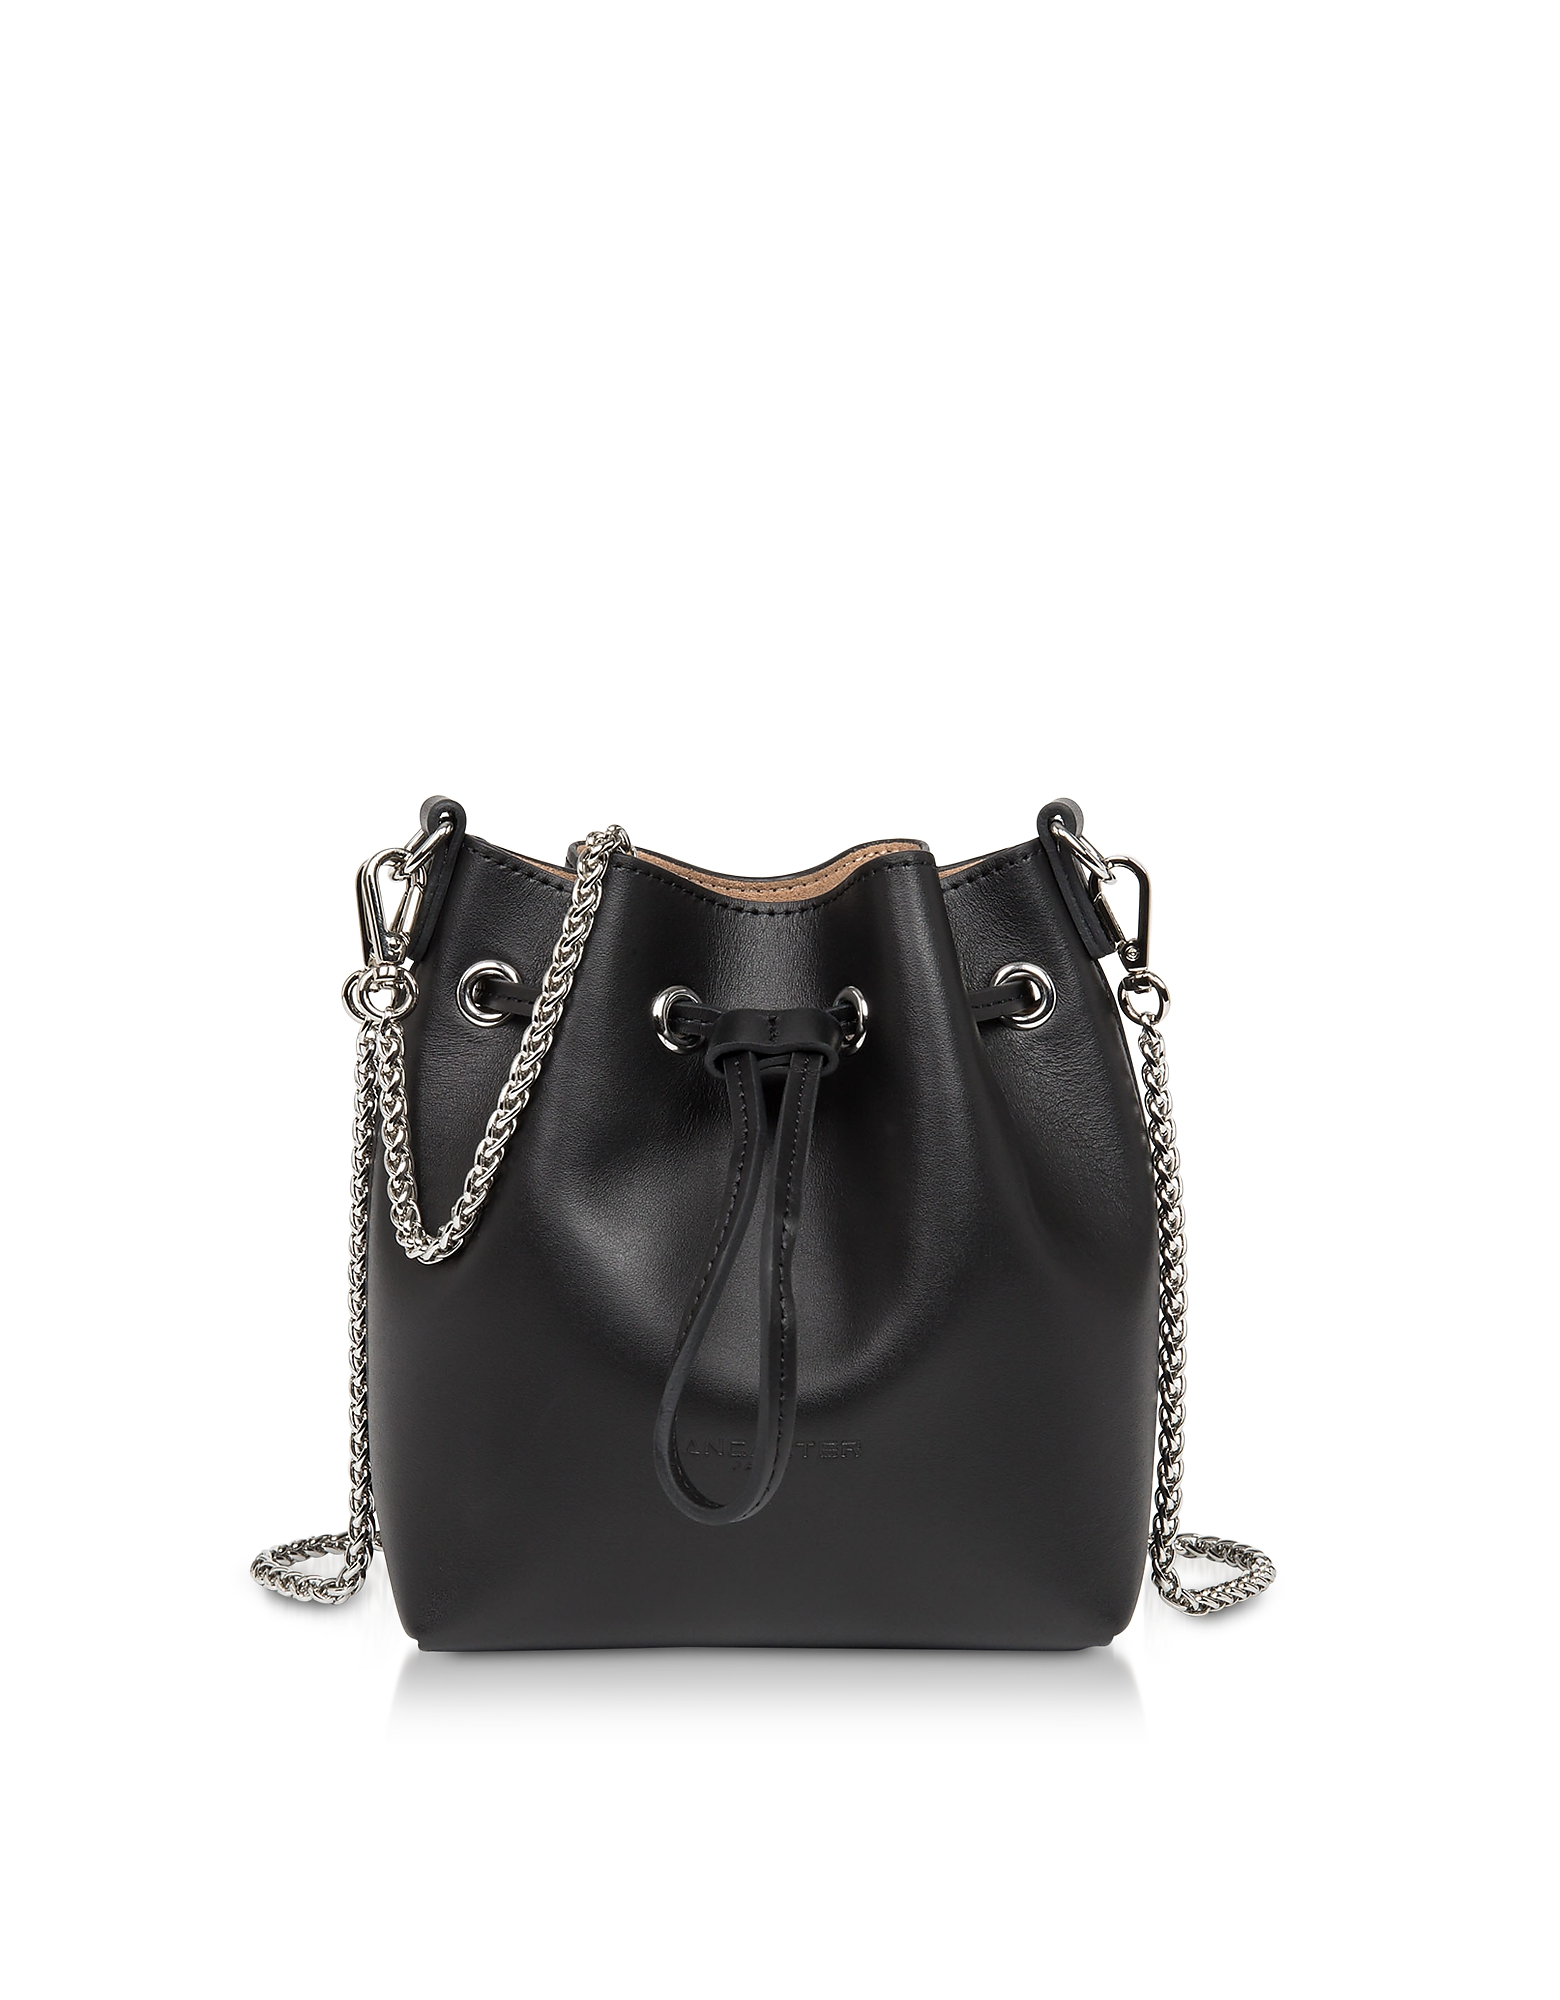 Treasure and Annae Leather Mini Bucket Bag